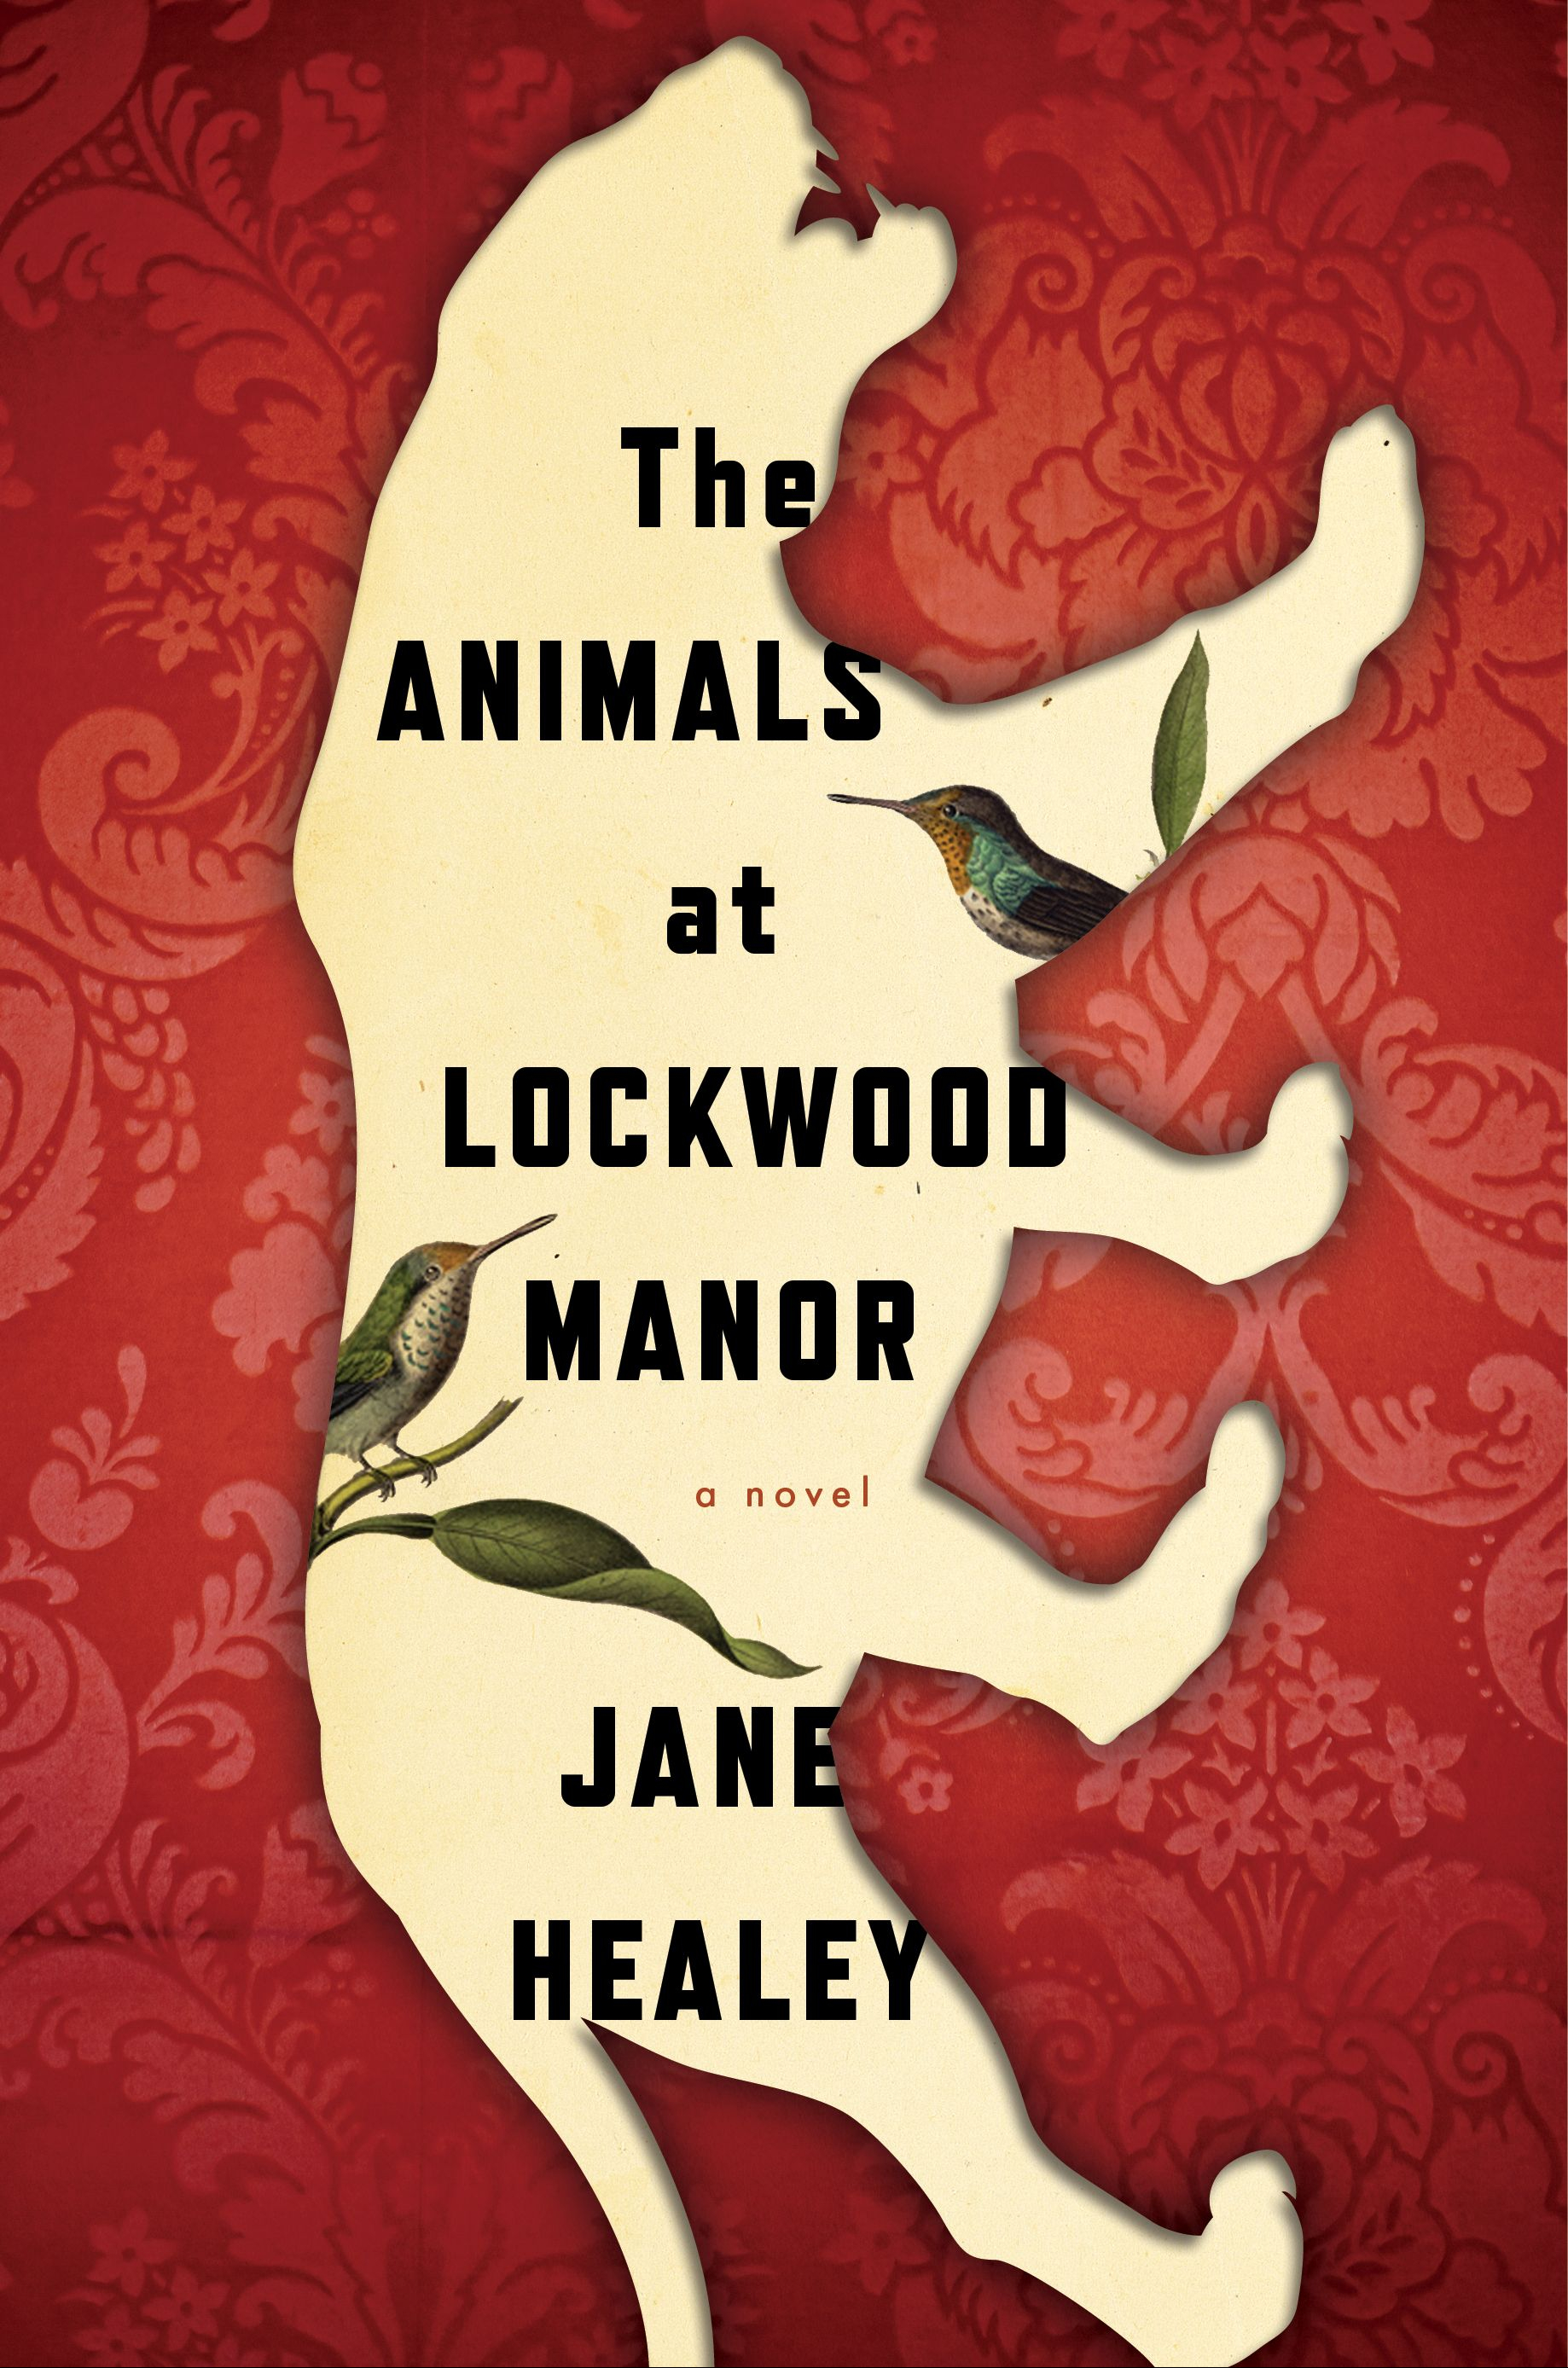 Book cover for The Animals at Lockwood Manor